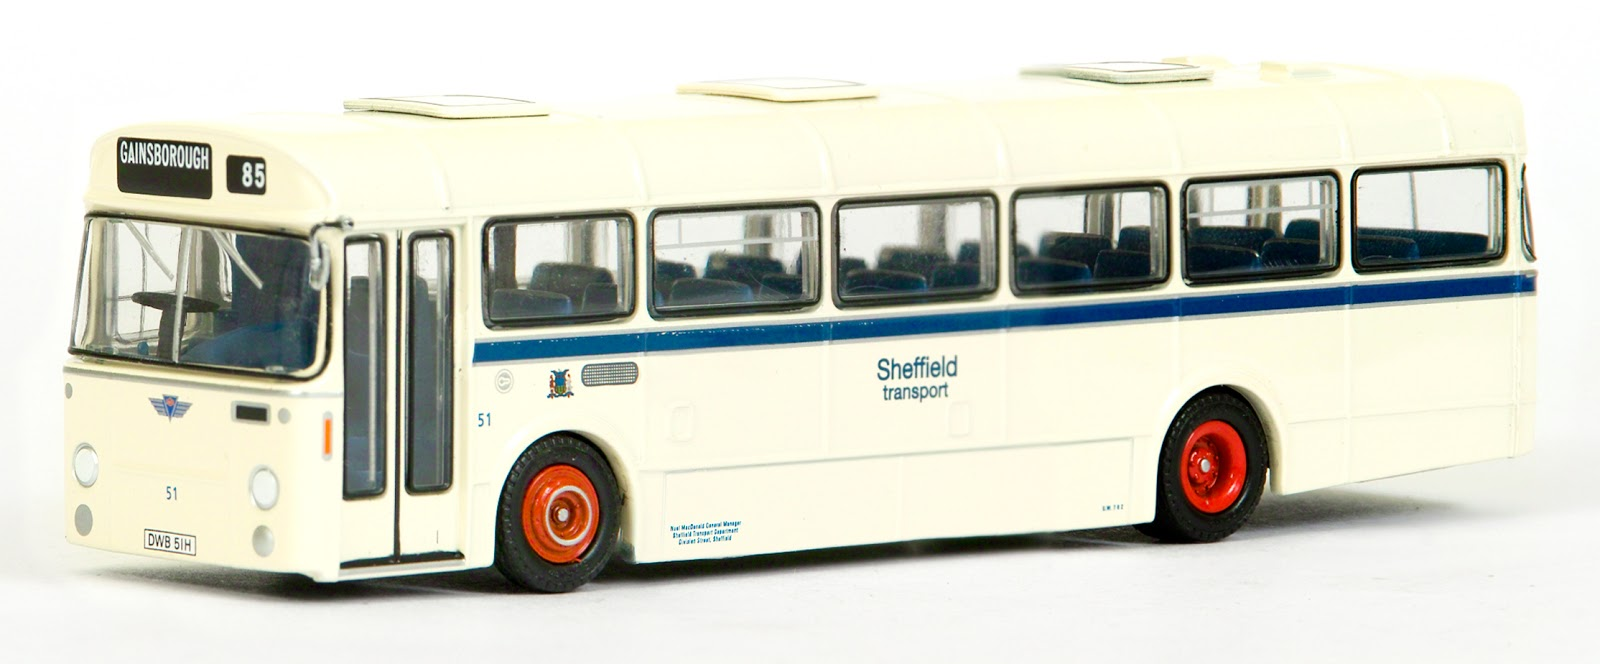 Exclusive first editions in the shops september 2014 for Timetable 85 sheffield